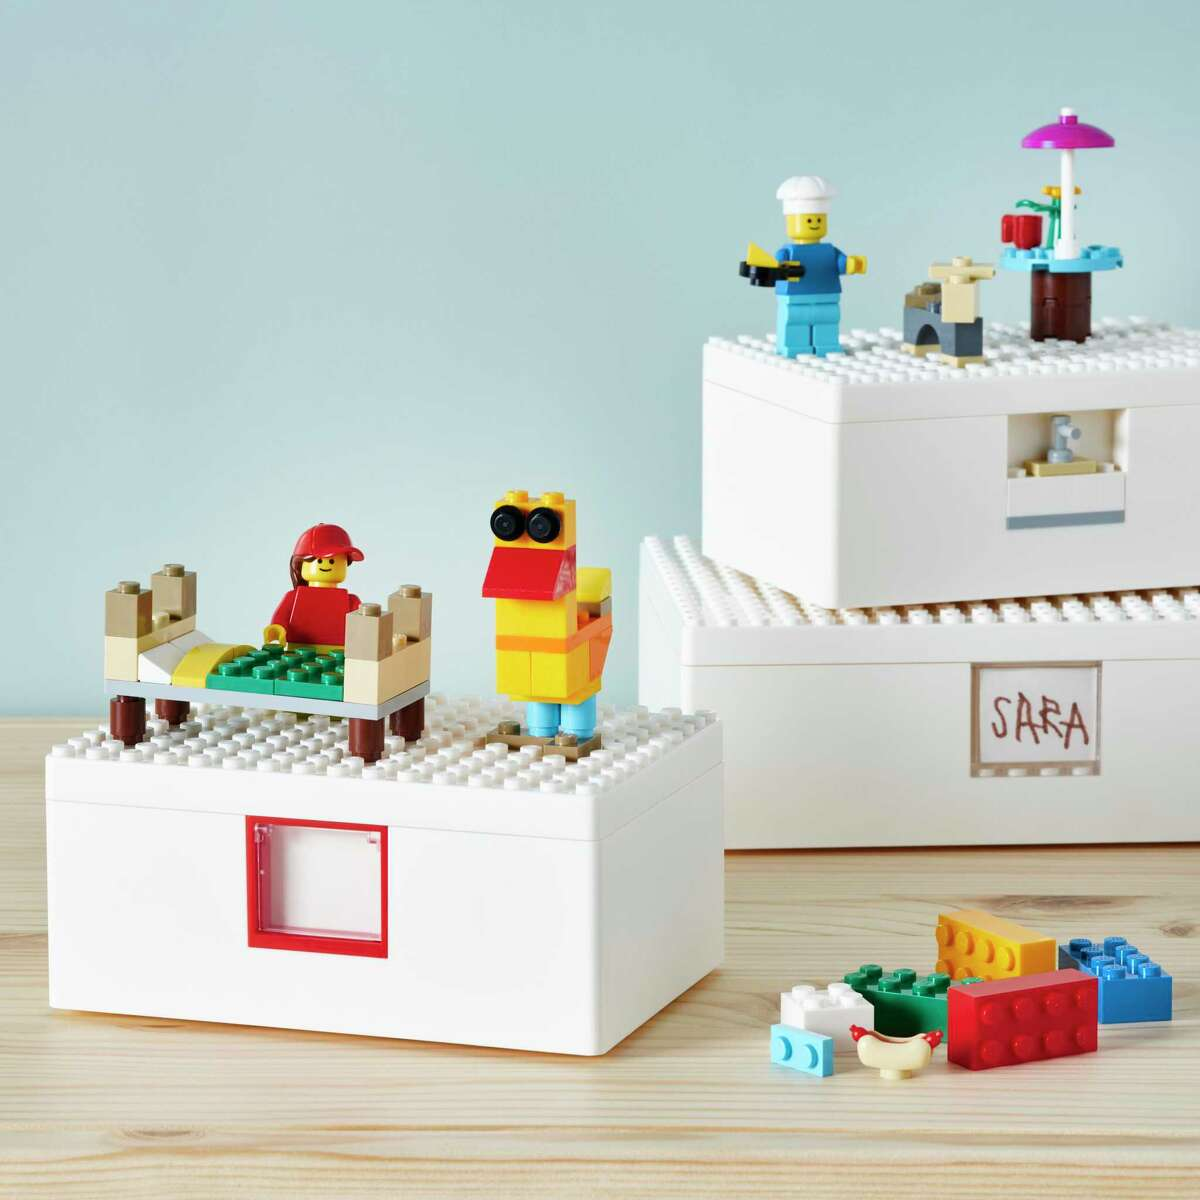 LEGO lovers will rejoice at the IKEA-LEGO collaboration that brings a first-of-its-kind collection with its BYGGLEK collection of playful storage solutions and a LEGO brick set unique to IKEA. LEGO boxes $9.99-$14.99 and 201-piece brick set, $14.99; ikea.com